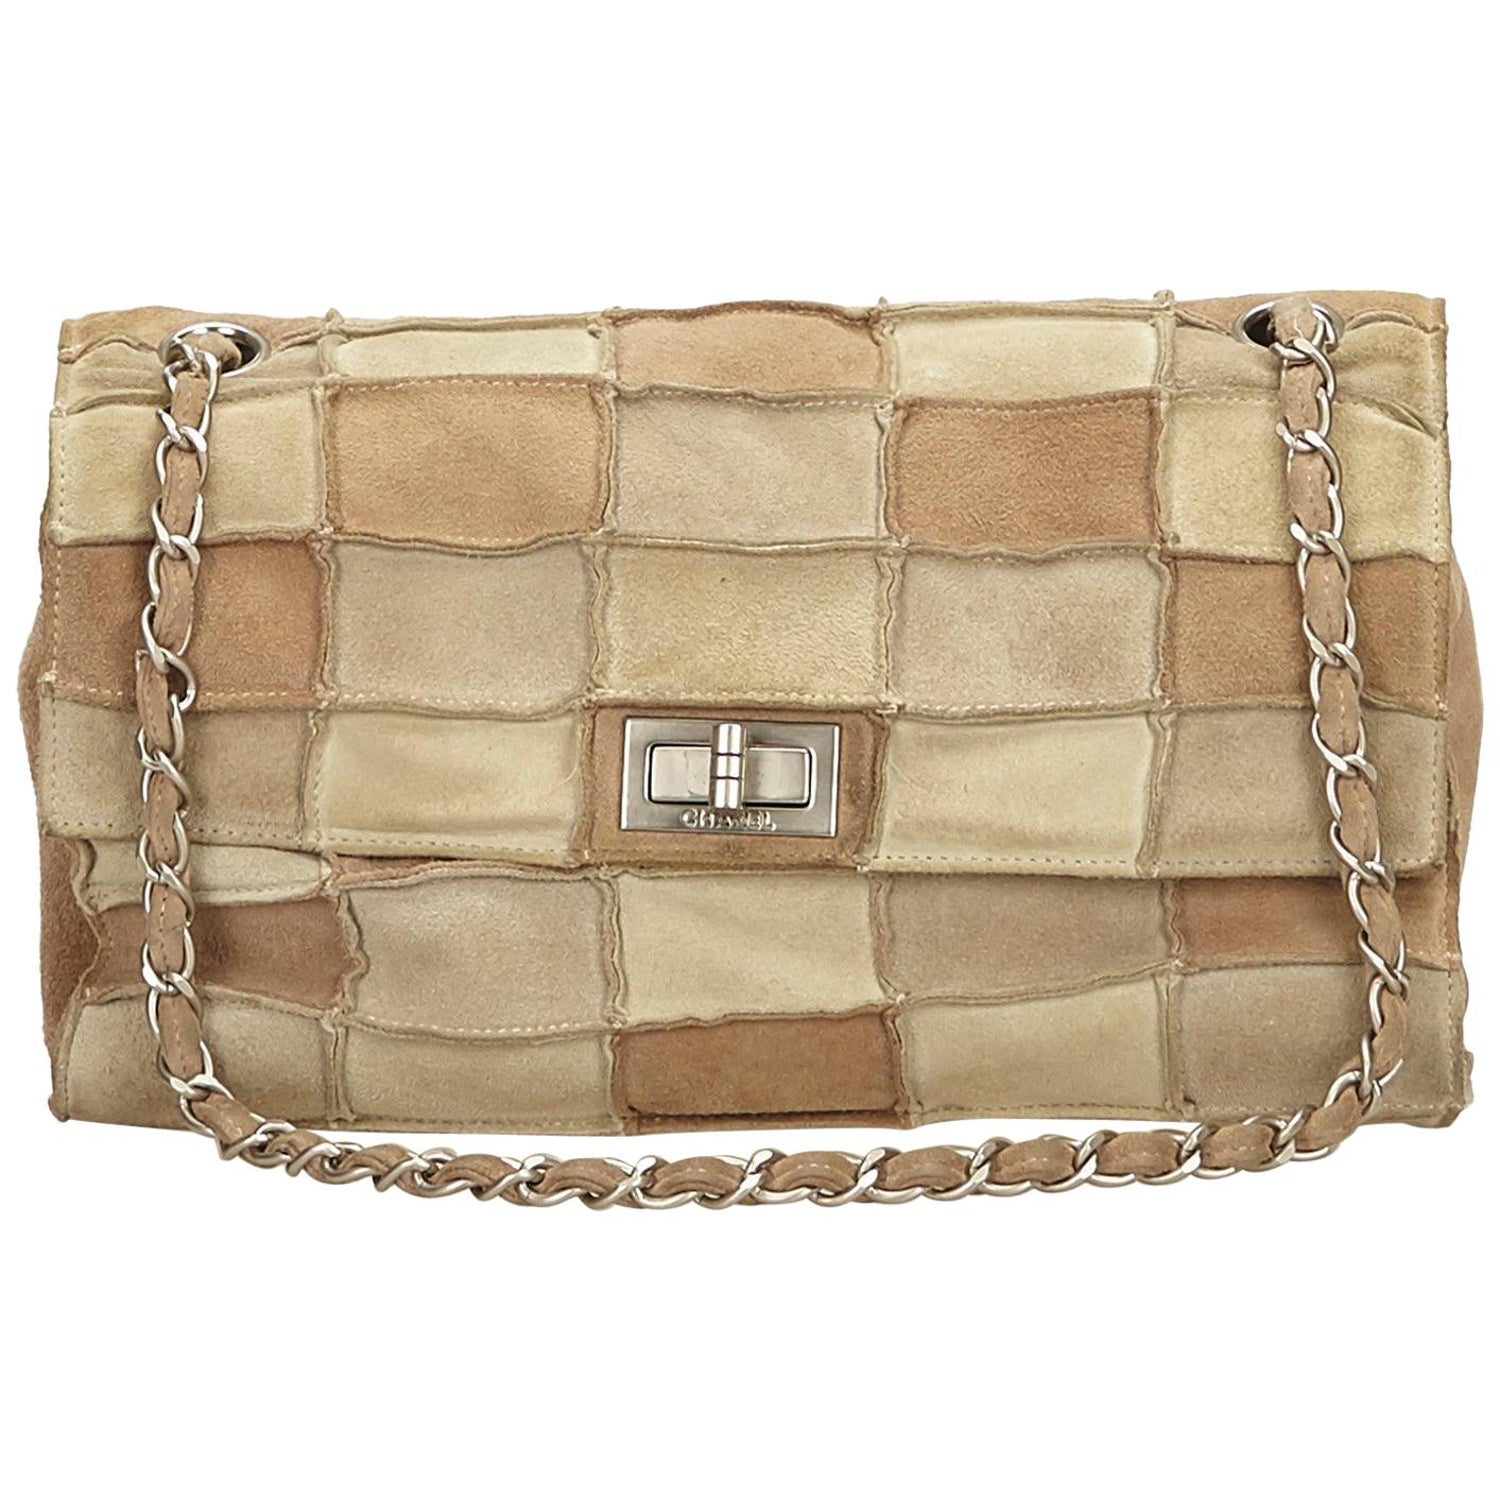 273be6d57590 Chanel Beige x Multi Reissue Patchwork Flap Bag at 1stdibs